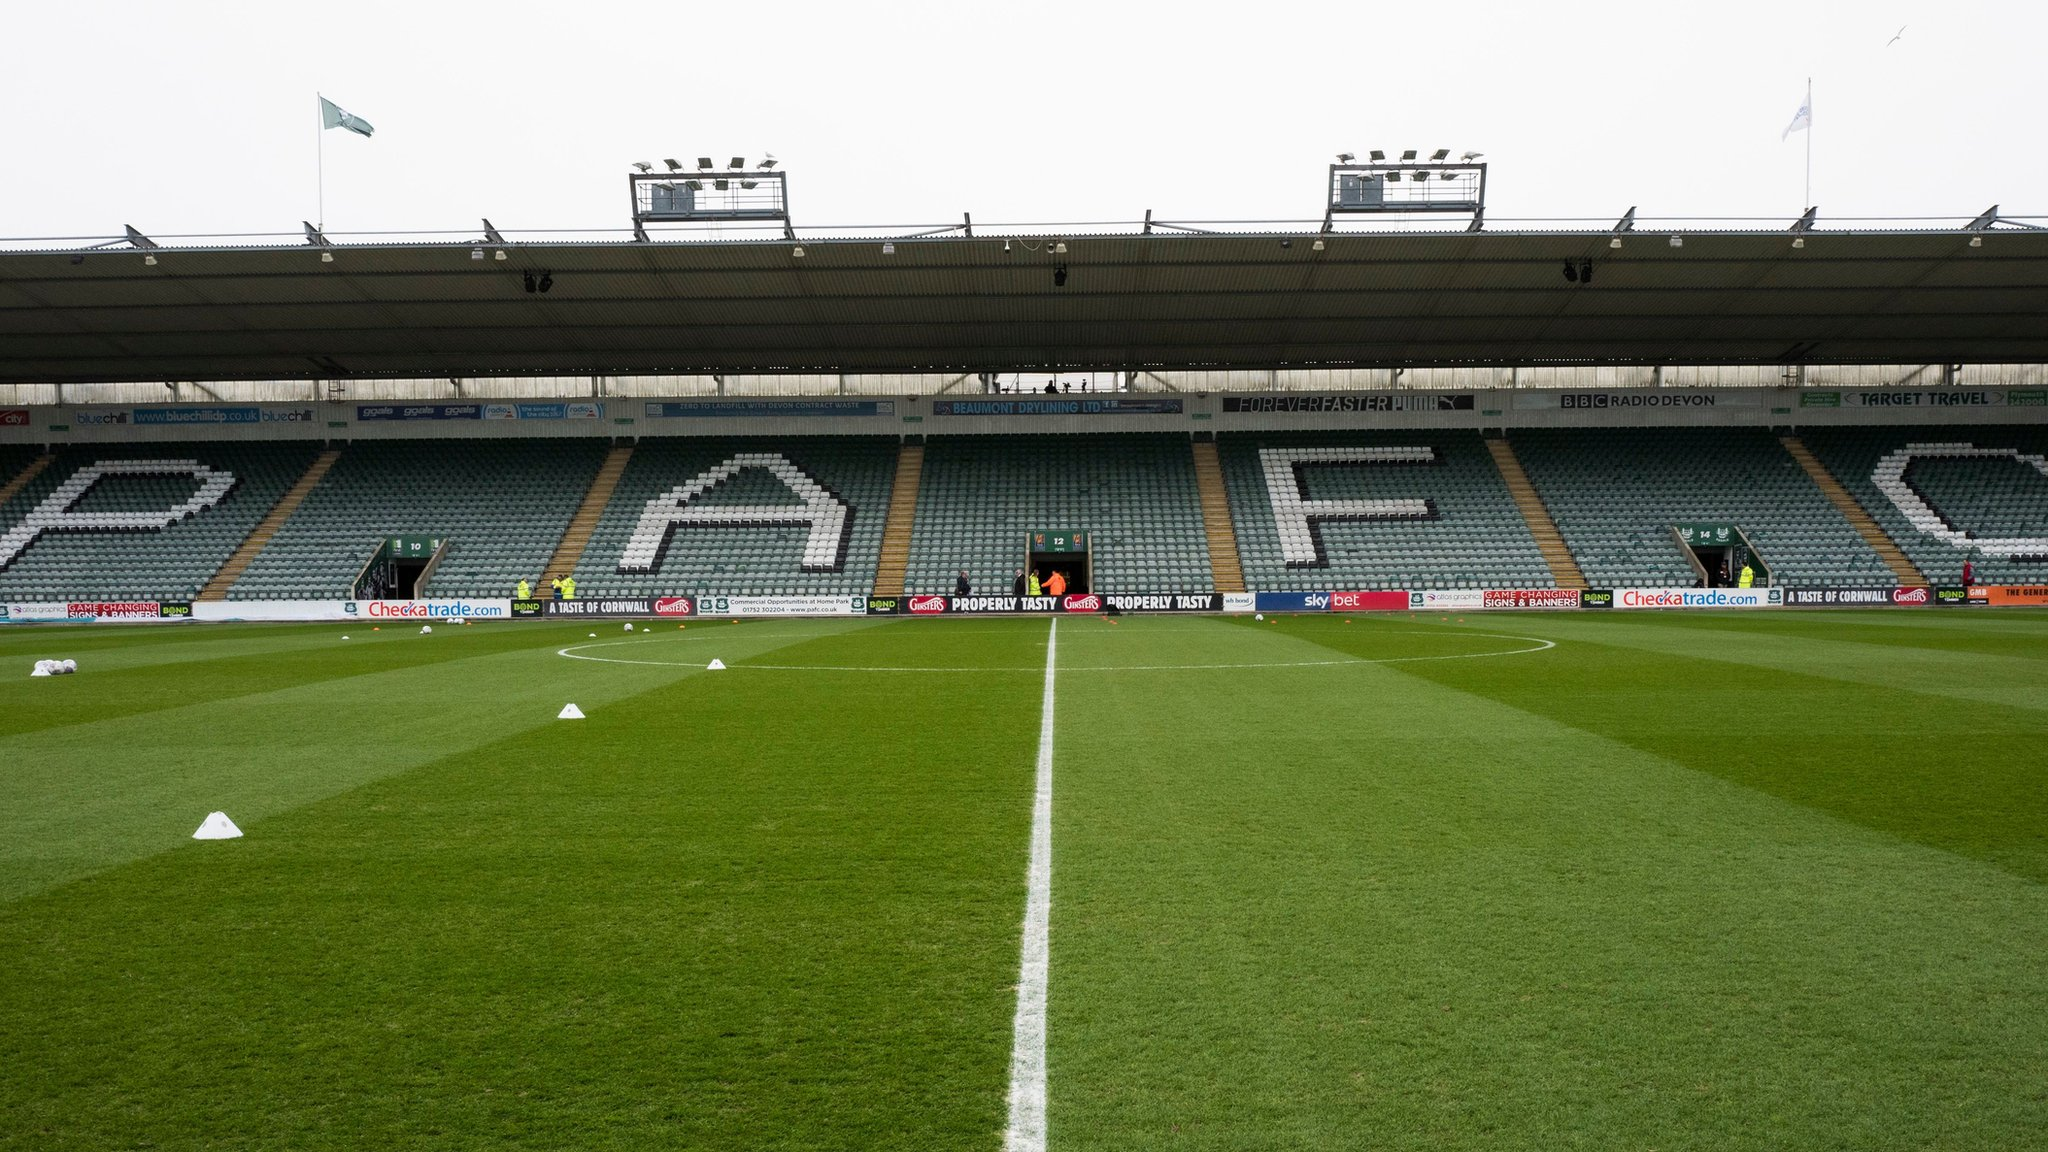 Plymouth Argyle: Andrew Parkinson to replace Michael Dunford as chief executive